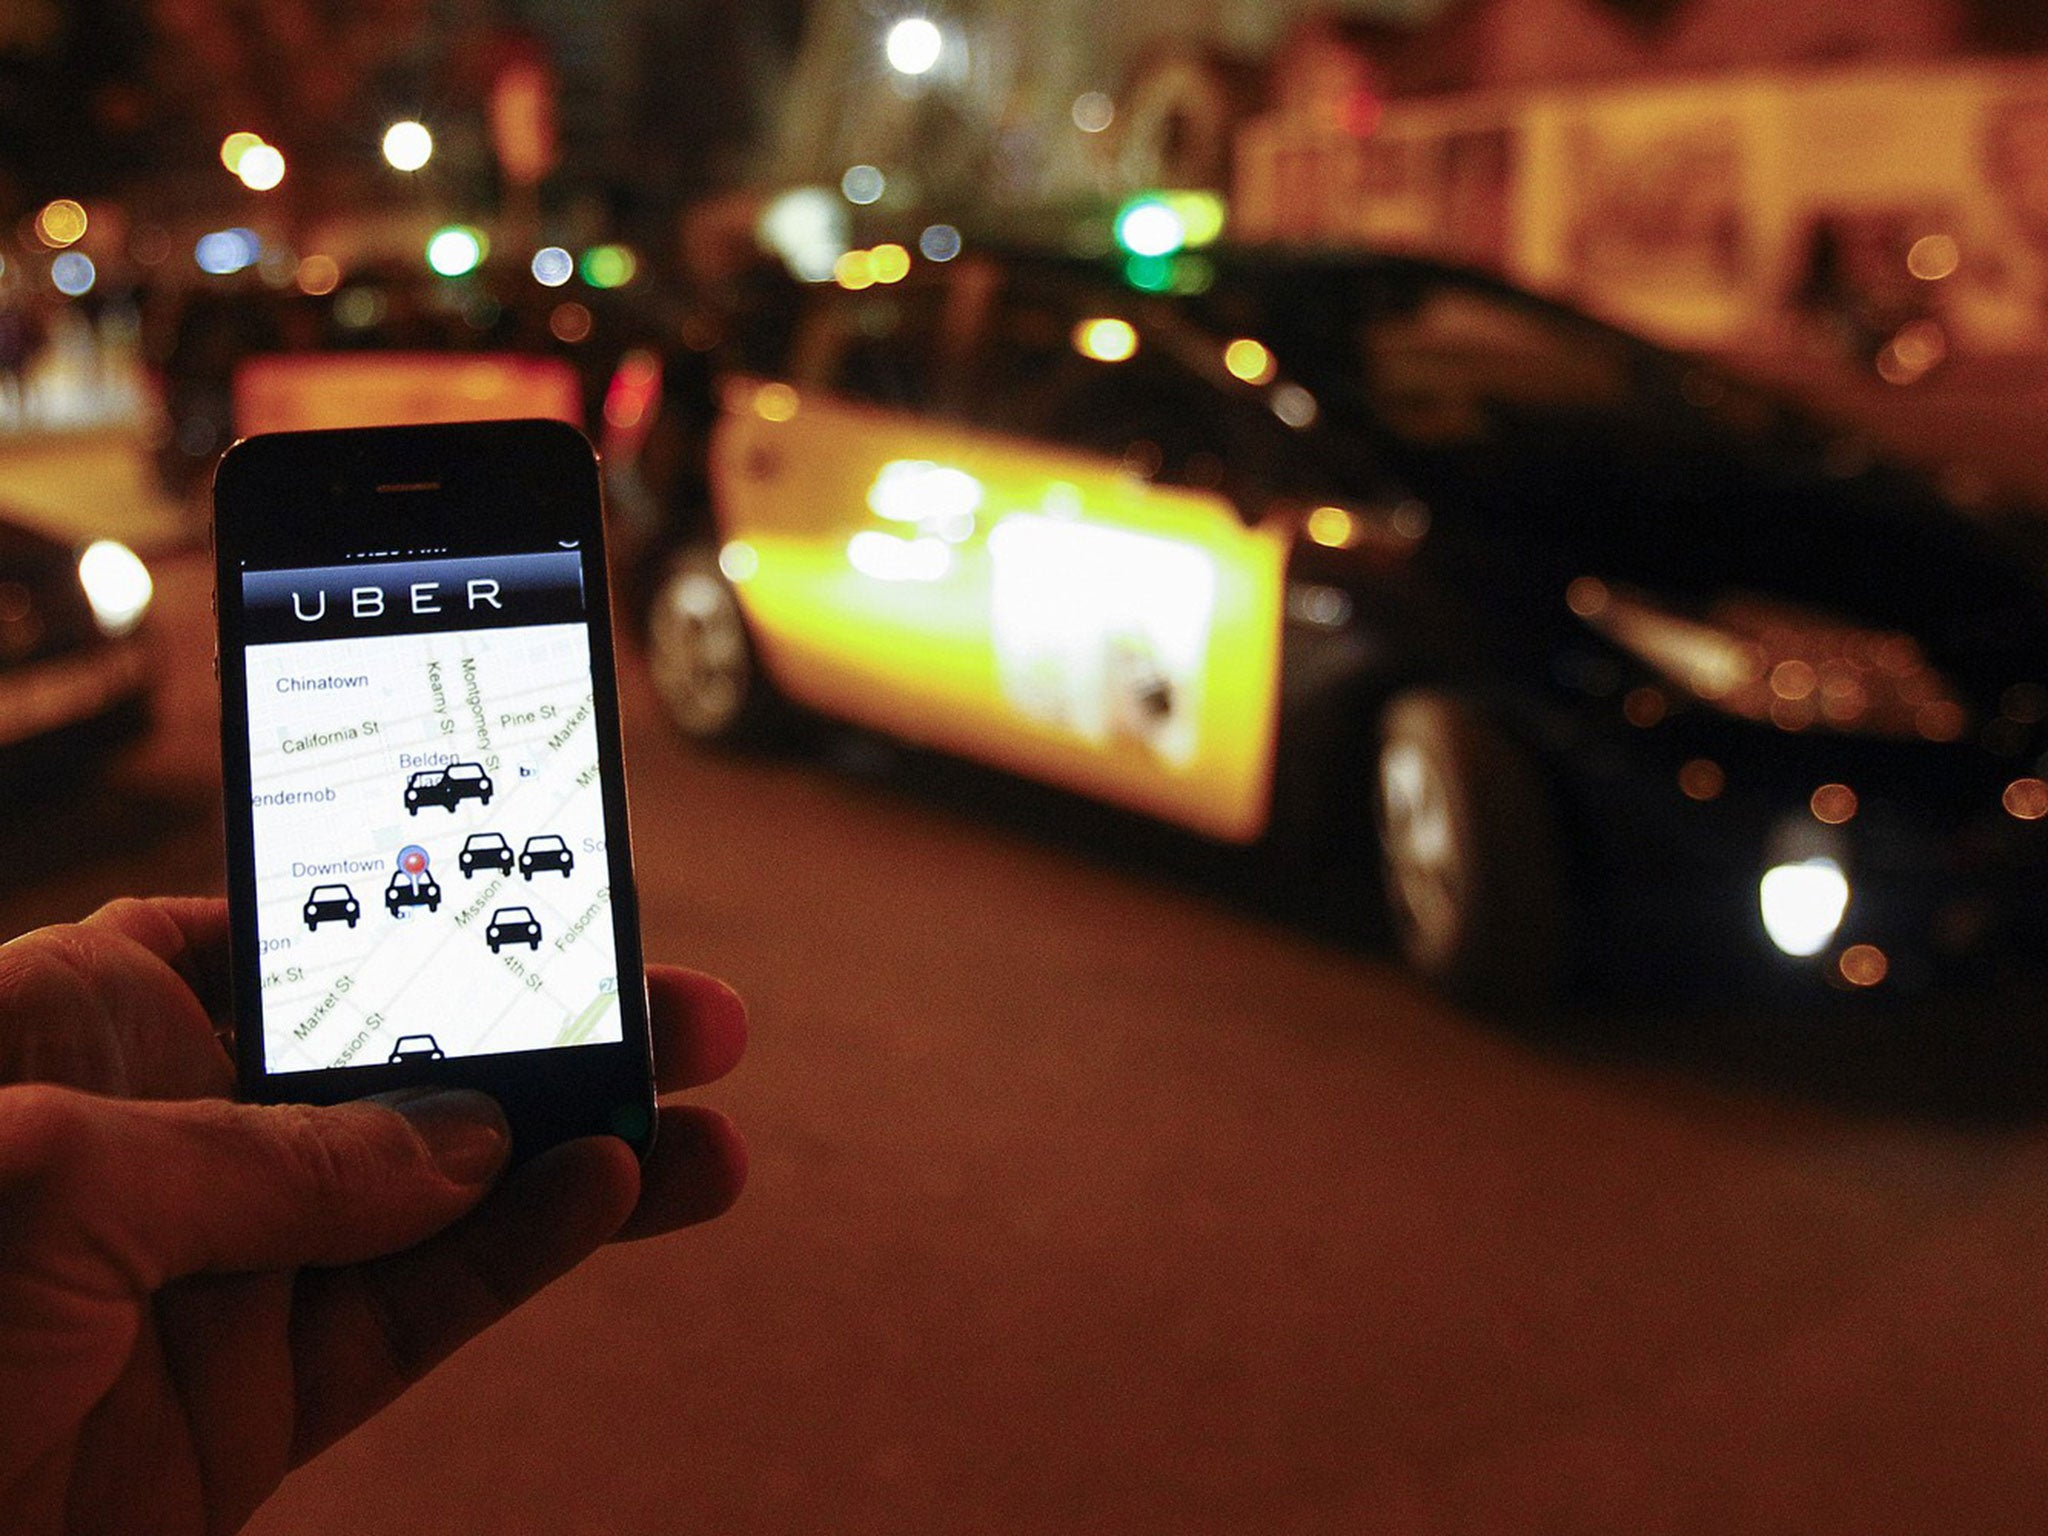 Uber Adverts Removed From Tfl Websites After Complaints From London Cabbies The Independent The Independent